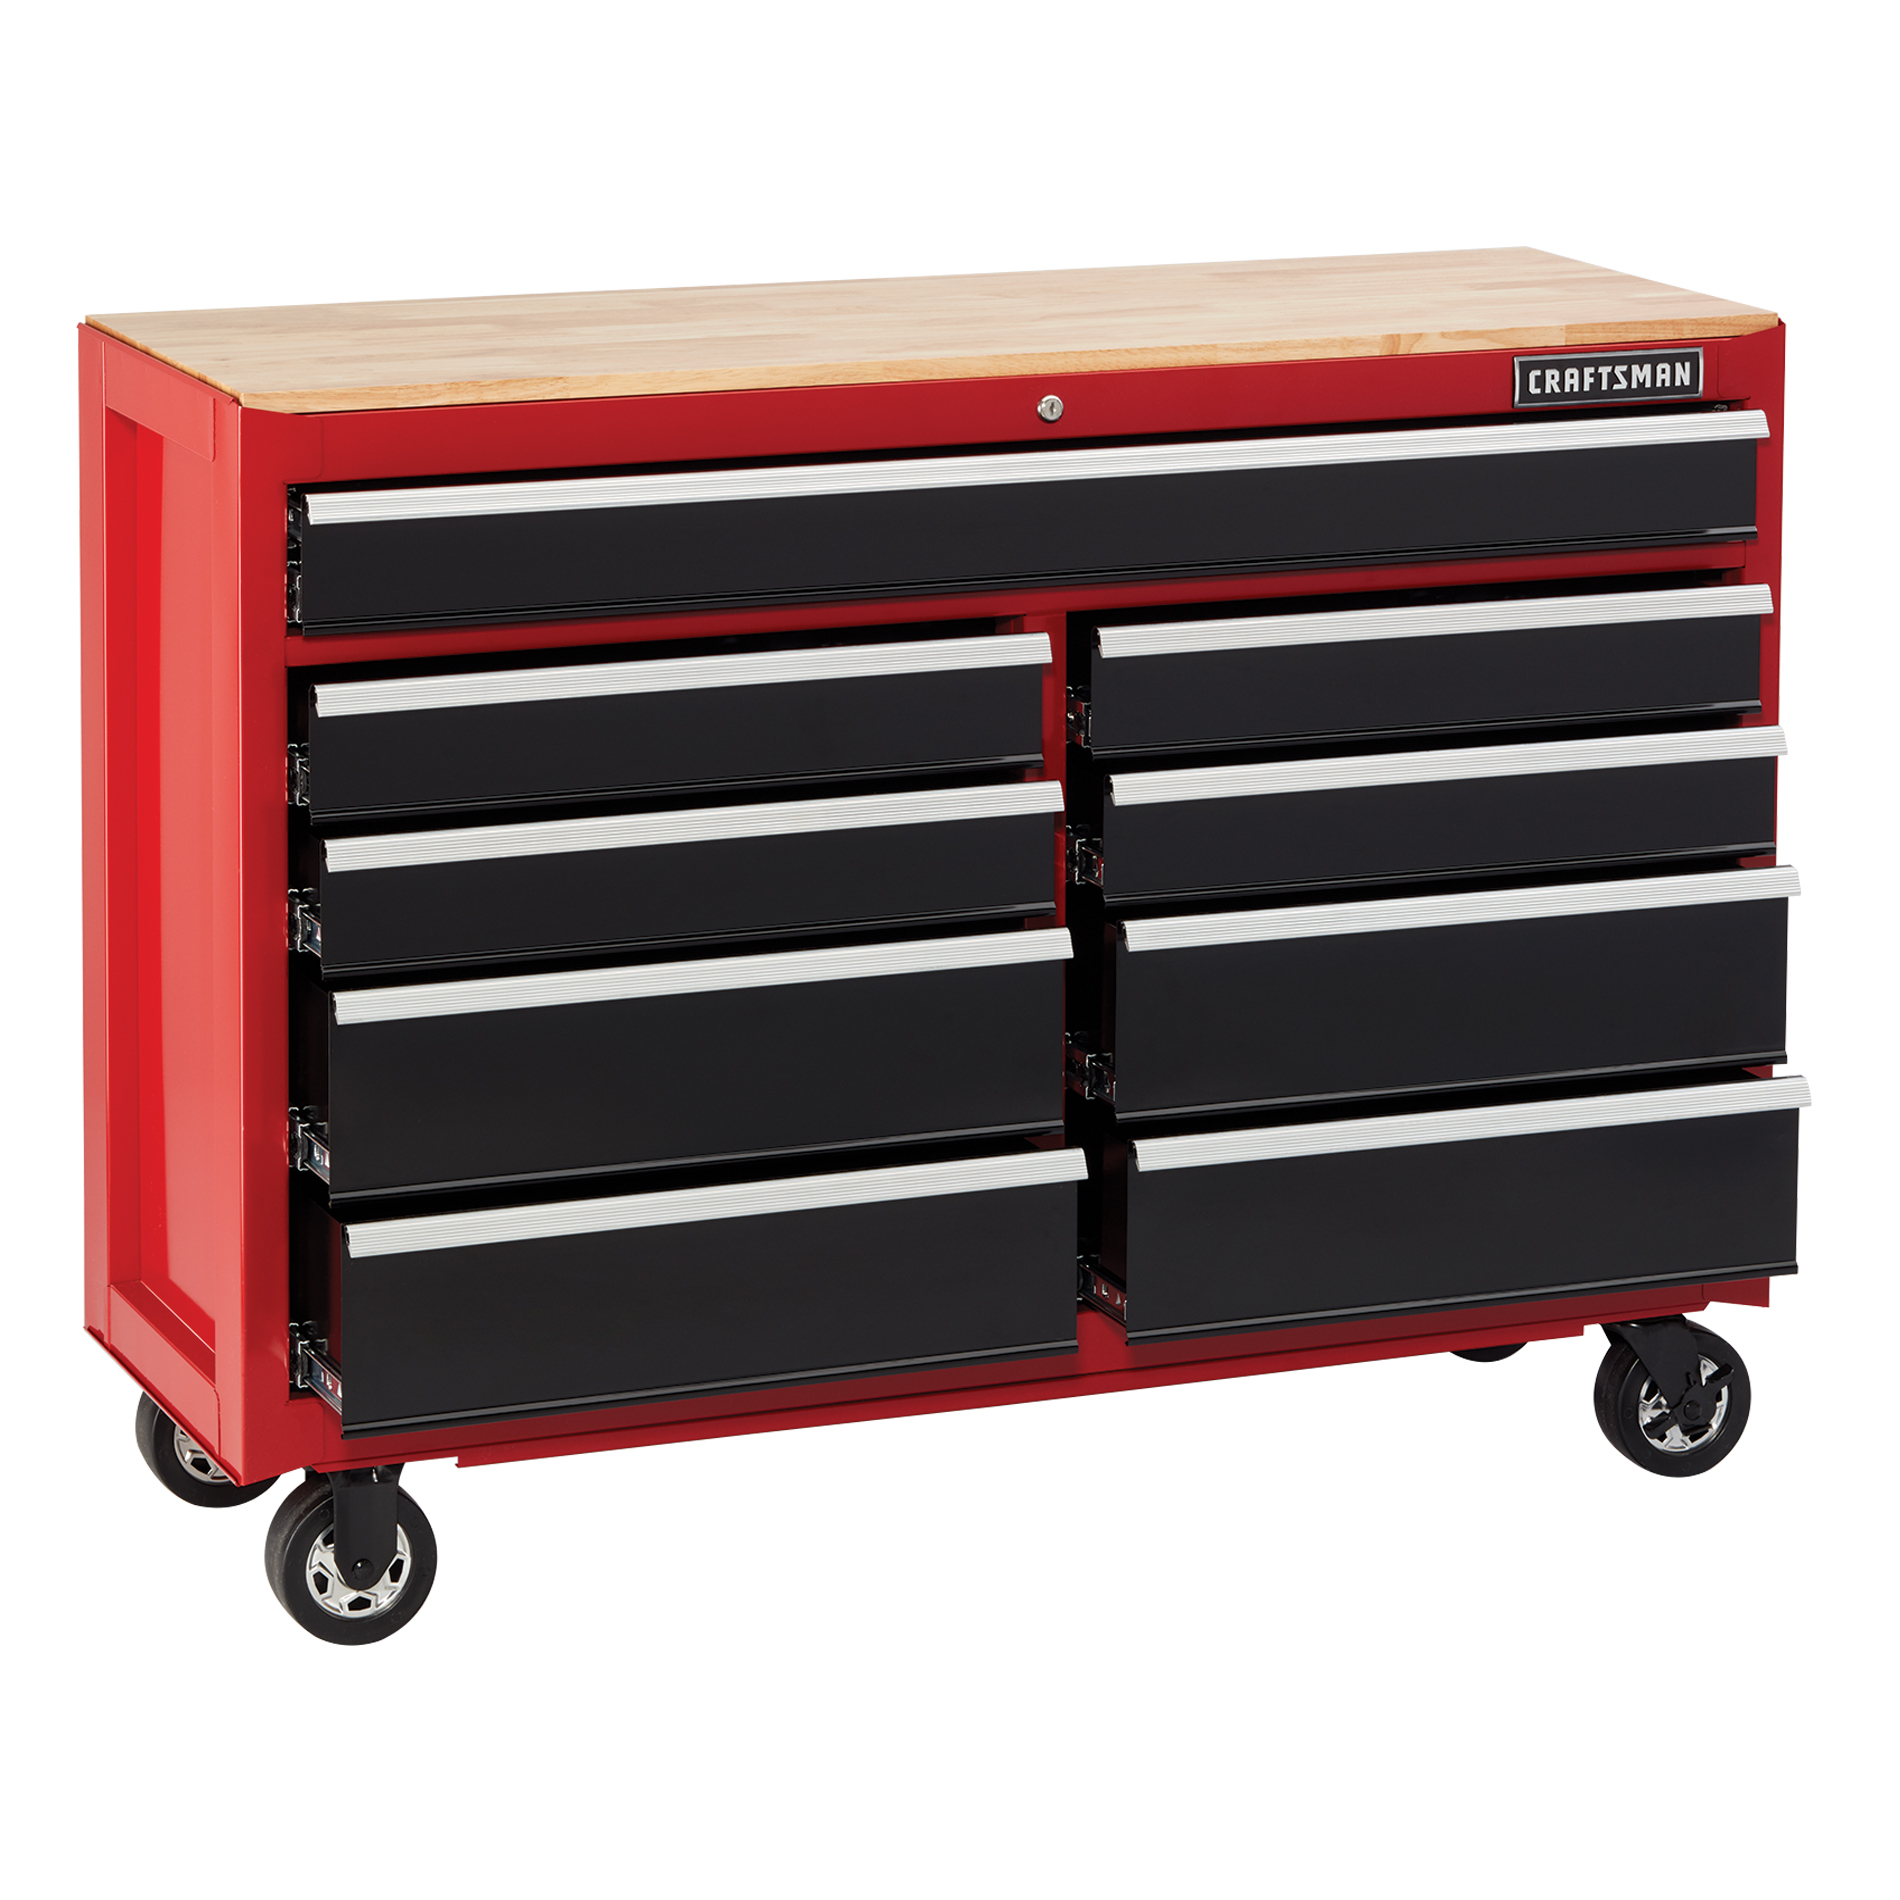 Craftsman 52 in. Wide 9-Drawer Heavy-Duty Ball-Bearing Mobile Workbench